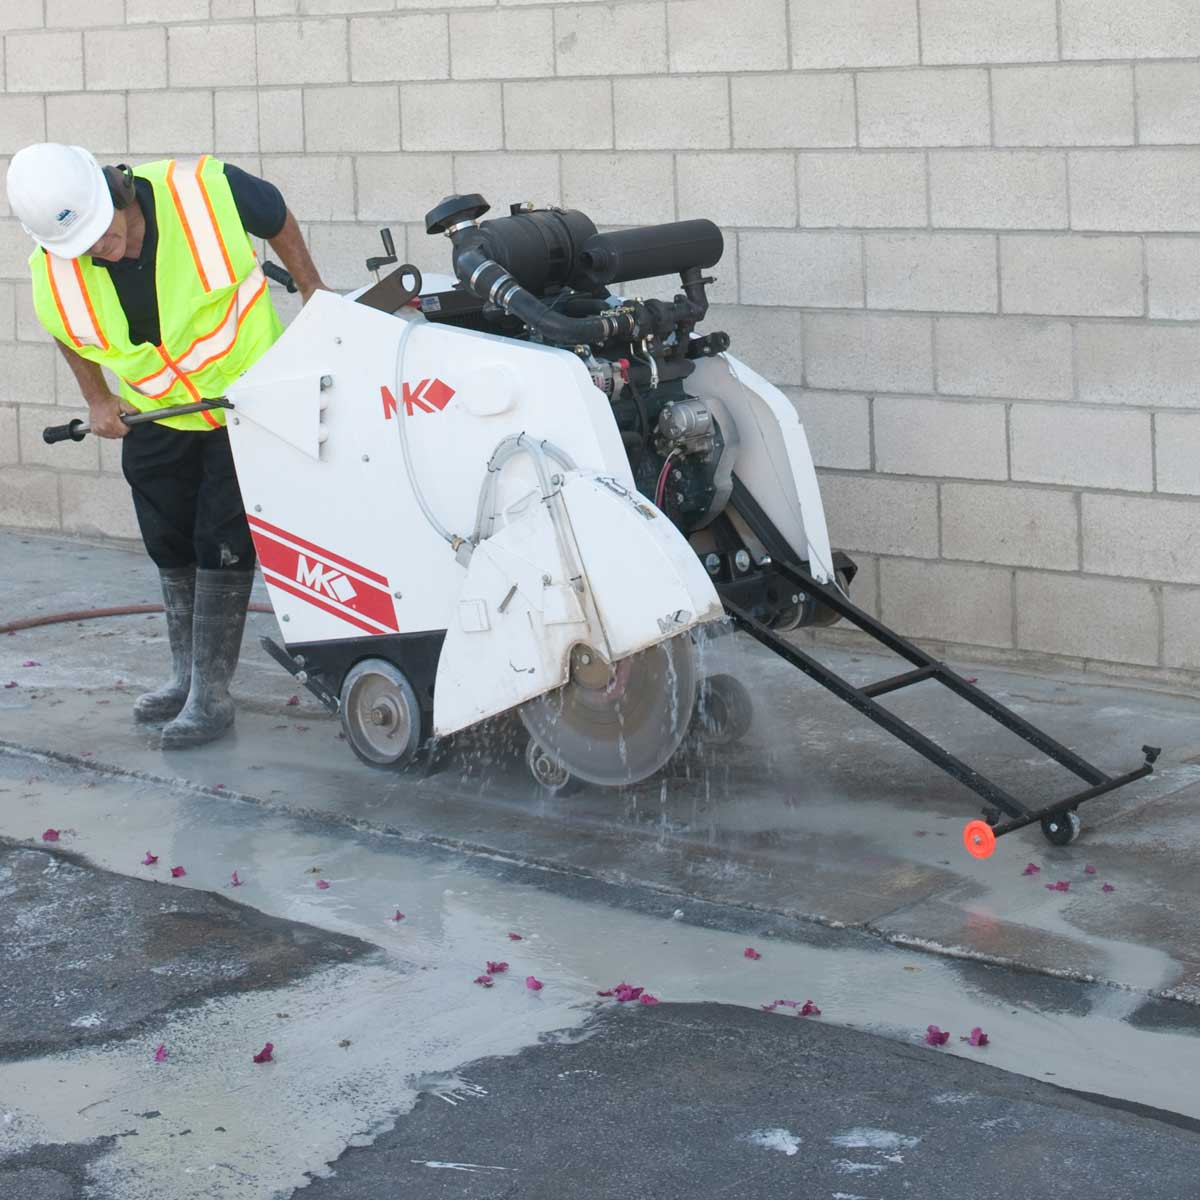 MK-4000 Road Cutting Concrete Saw